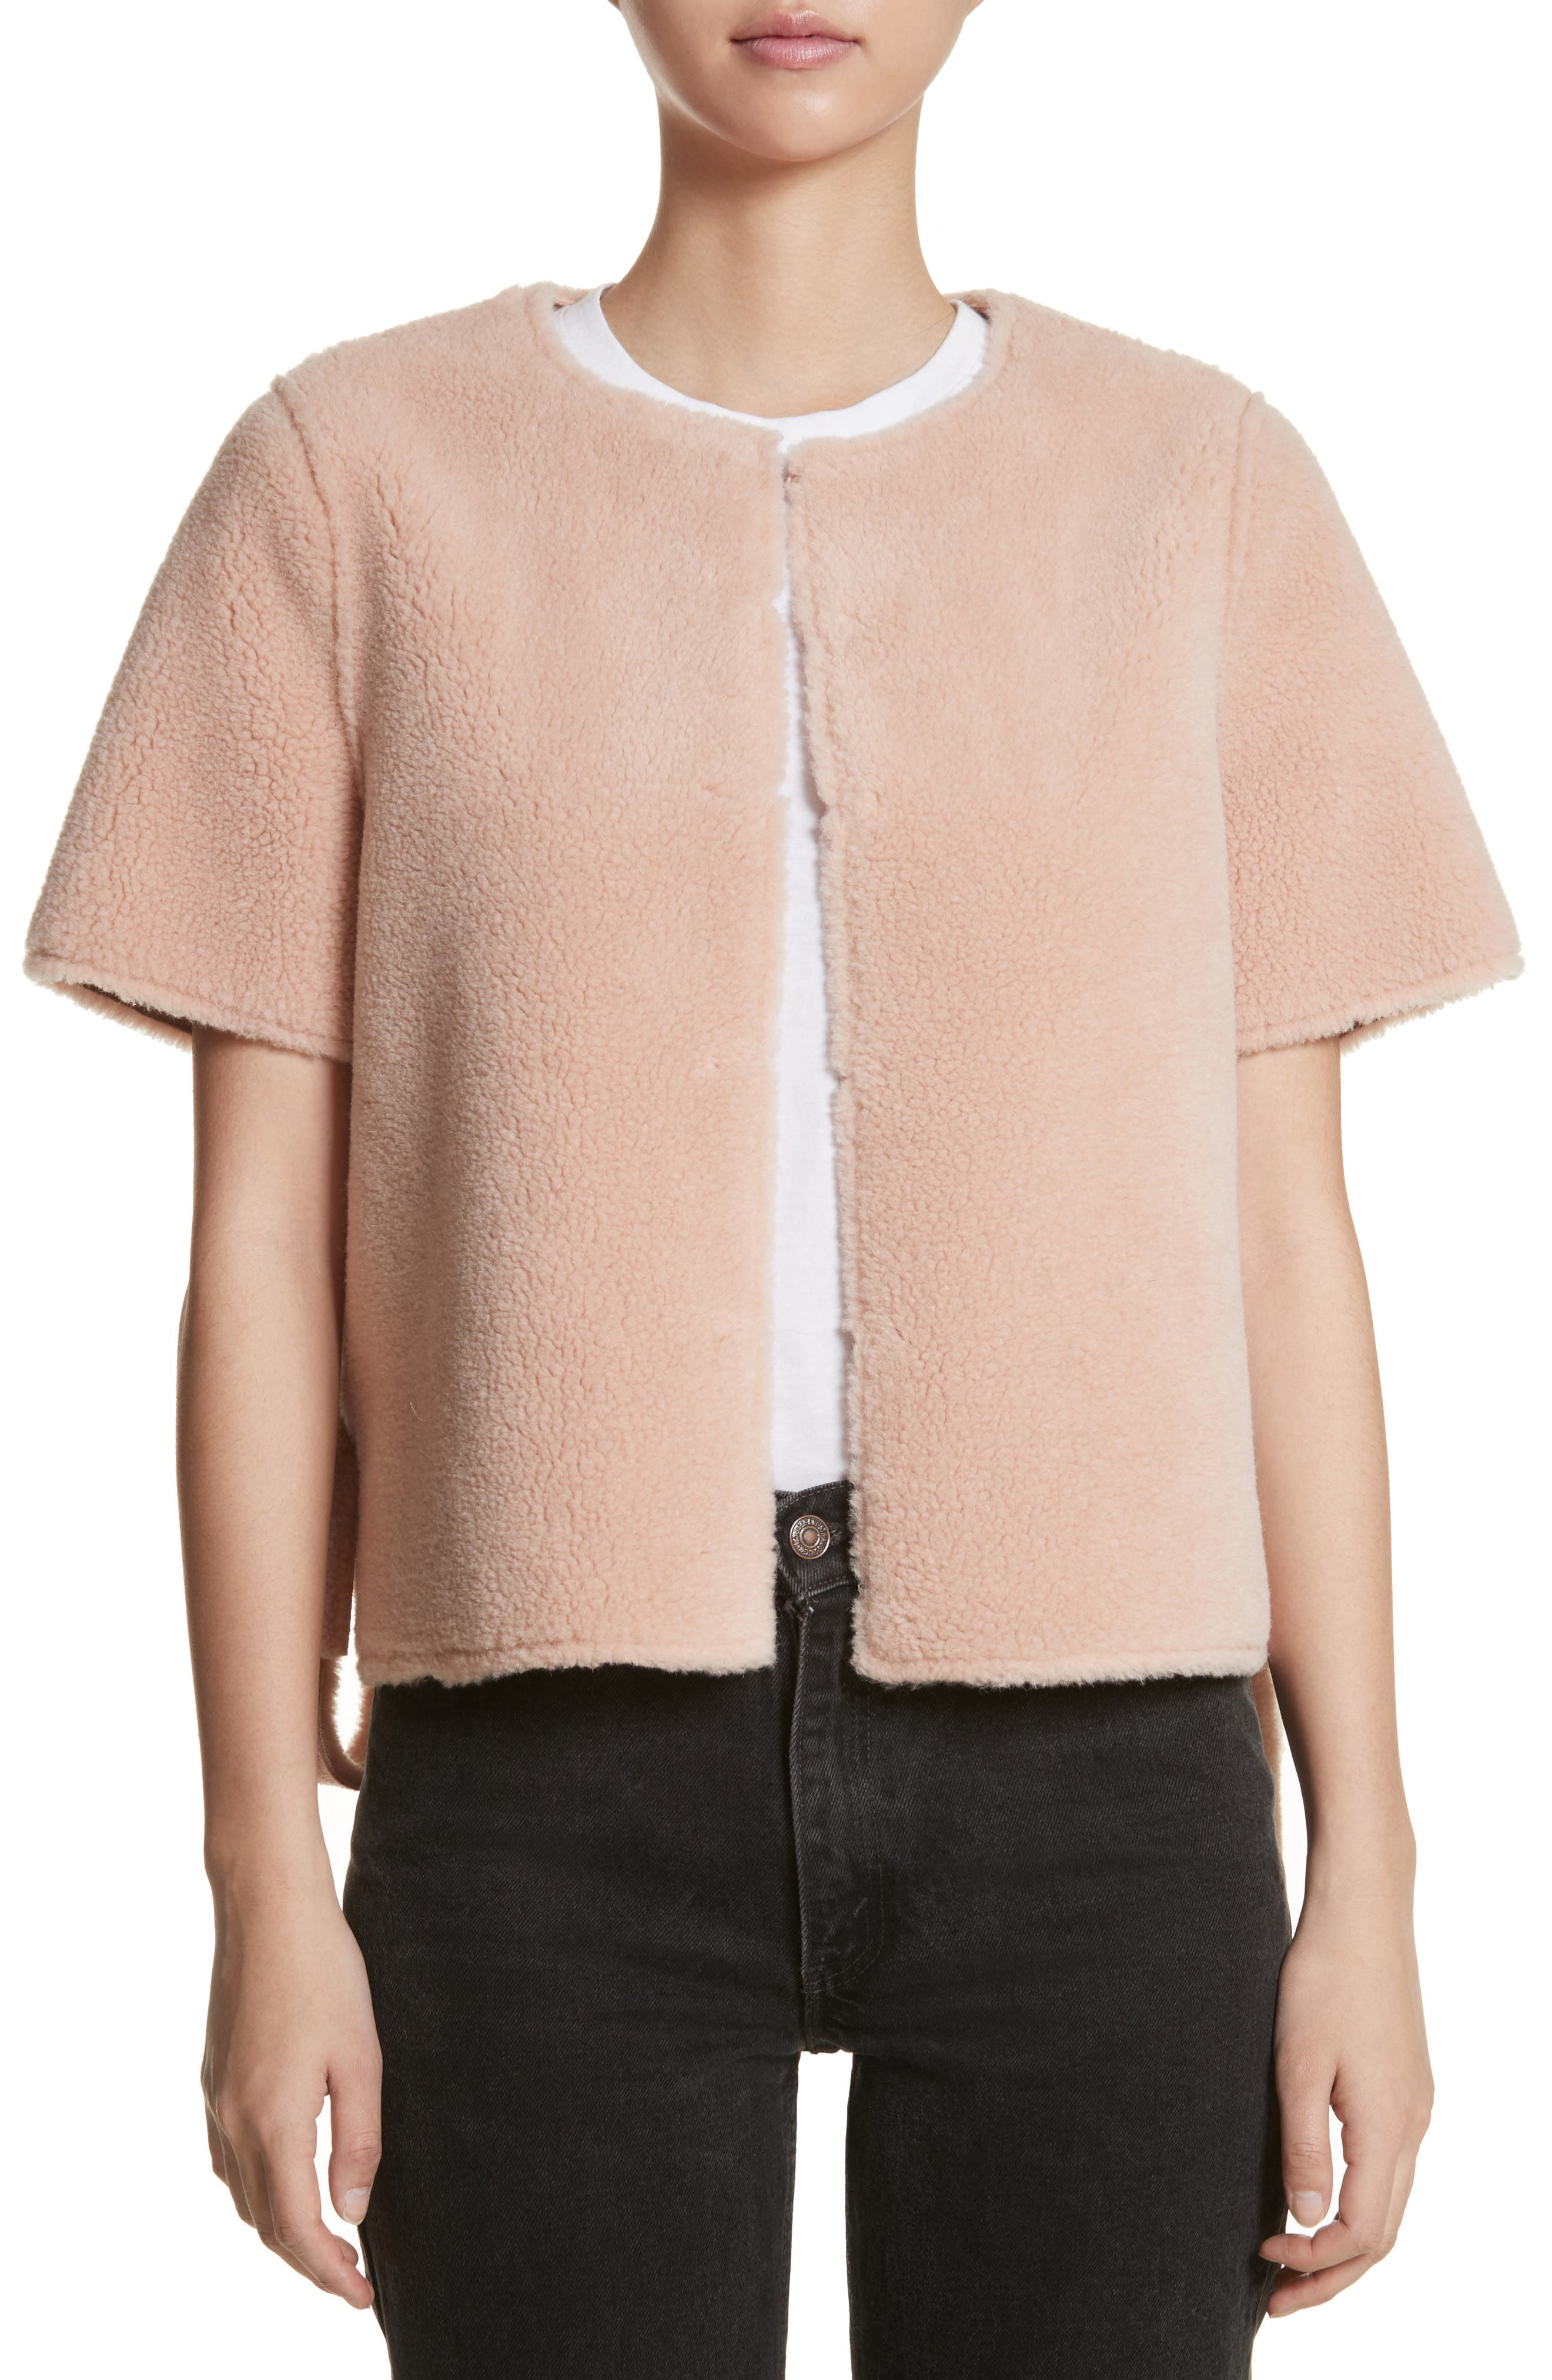 Alfonso Faux Shearling Side Tie Jacket,                         Main,                         color, 950